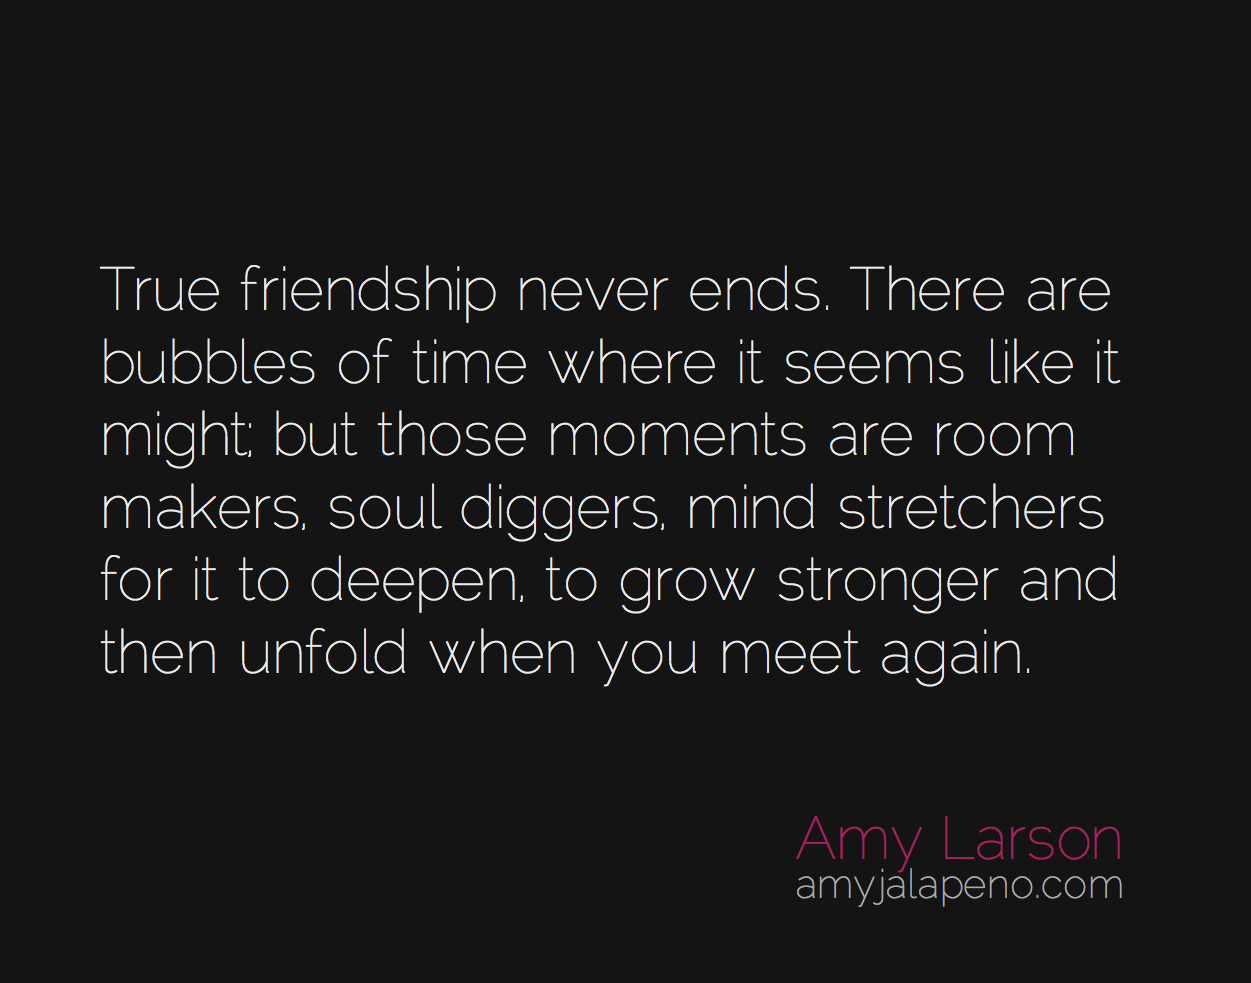 Quotes About Real Friendship Do True Friendships Really End Daily Hot Quote  Amyjalapeño